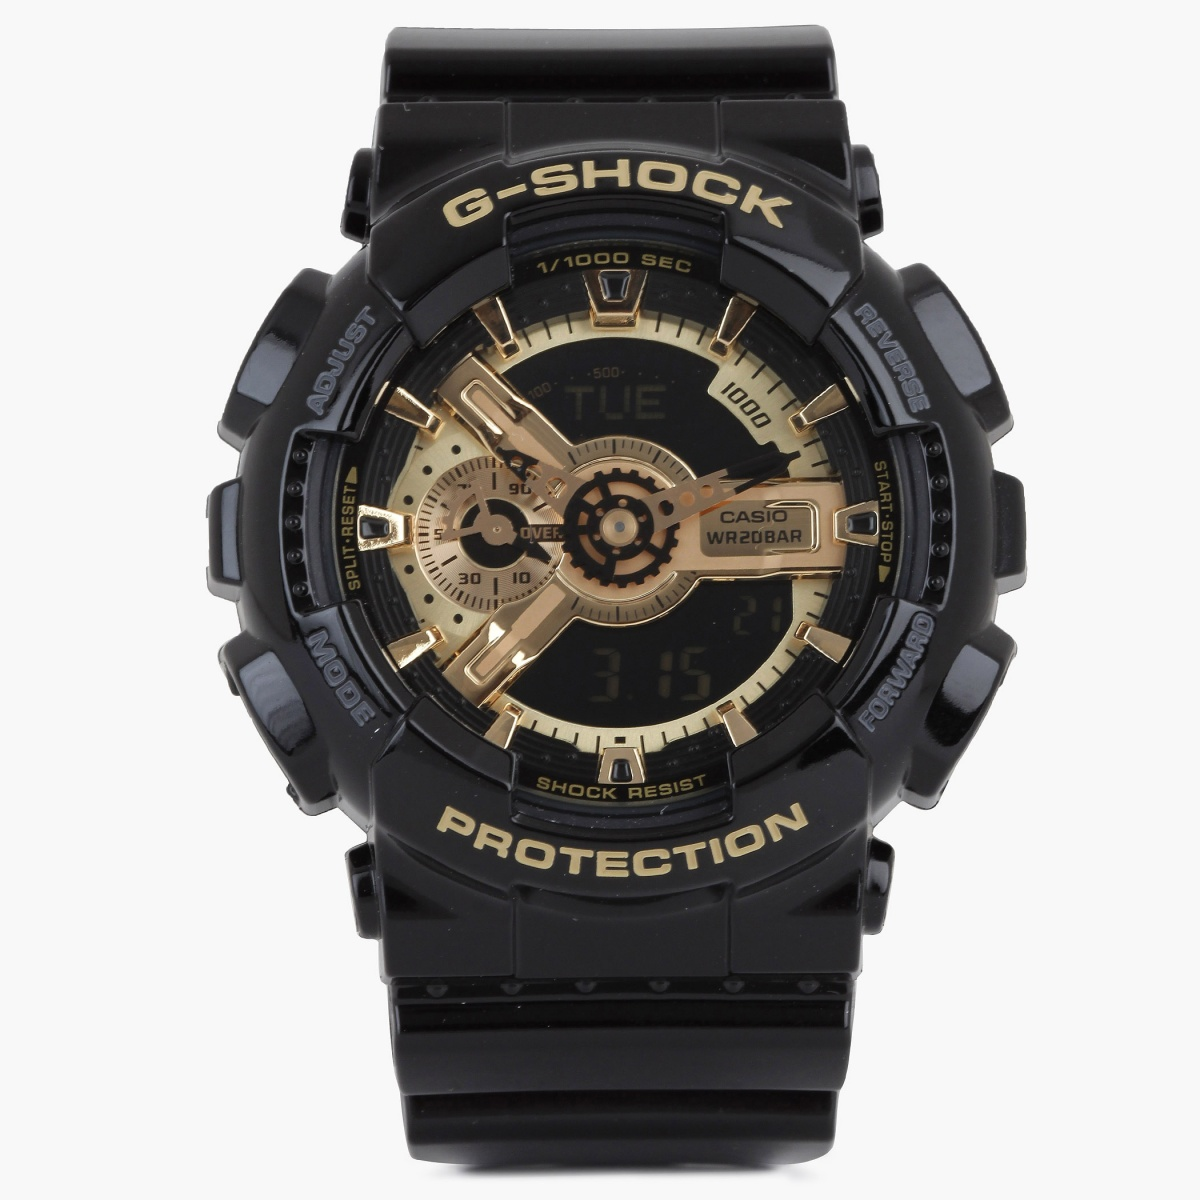 CASIO G339 Analog & Digital Watch